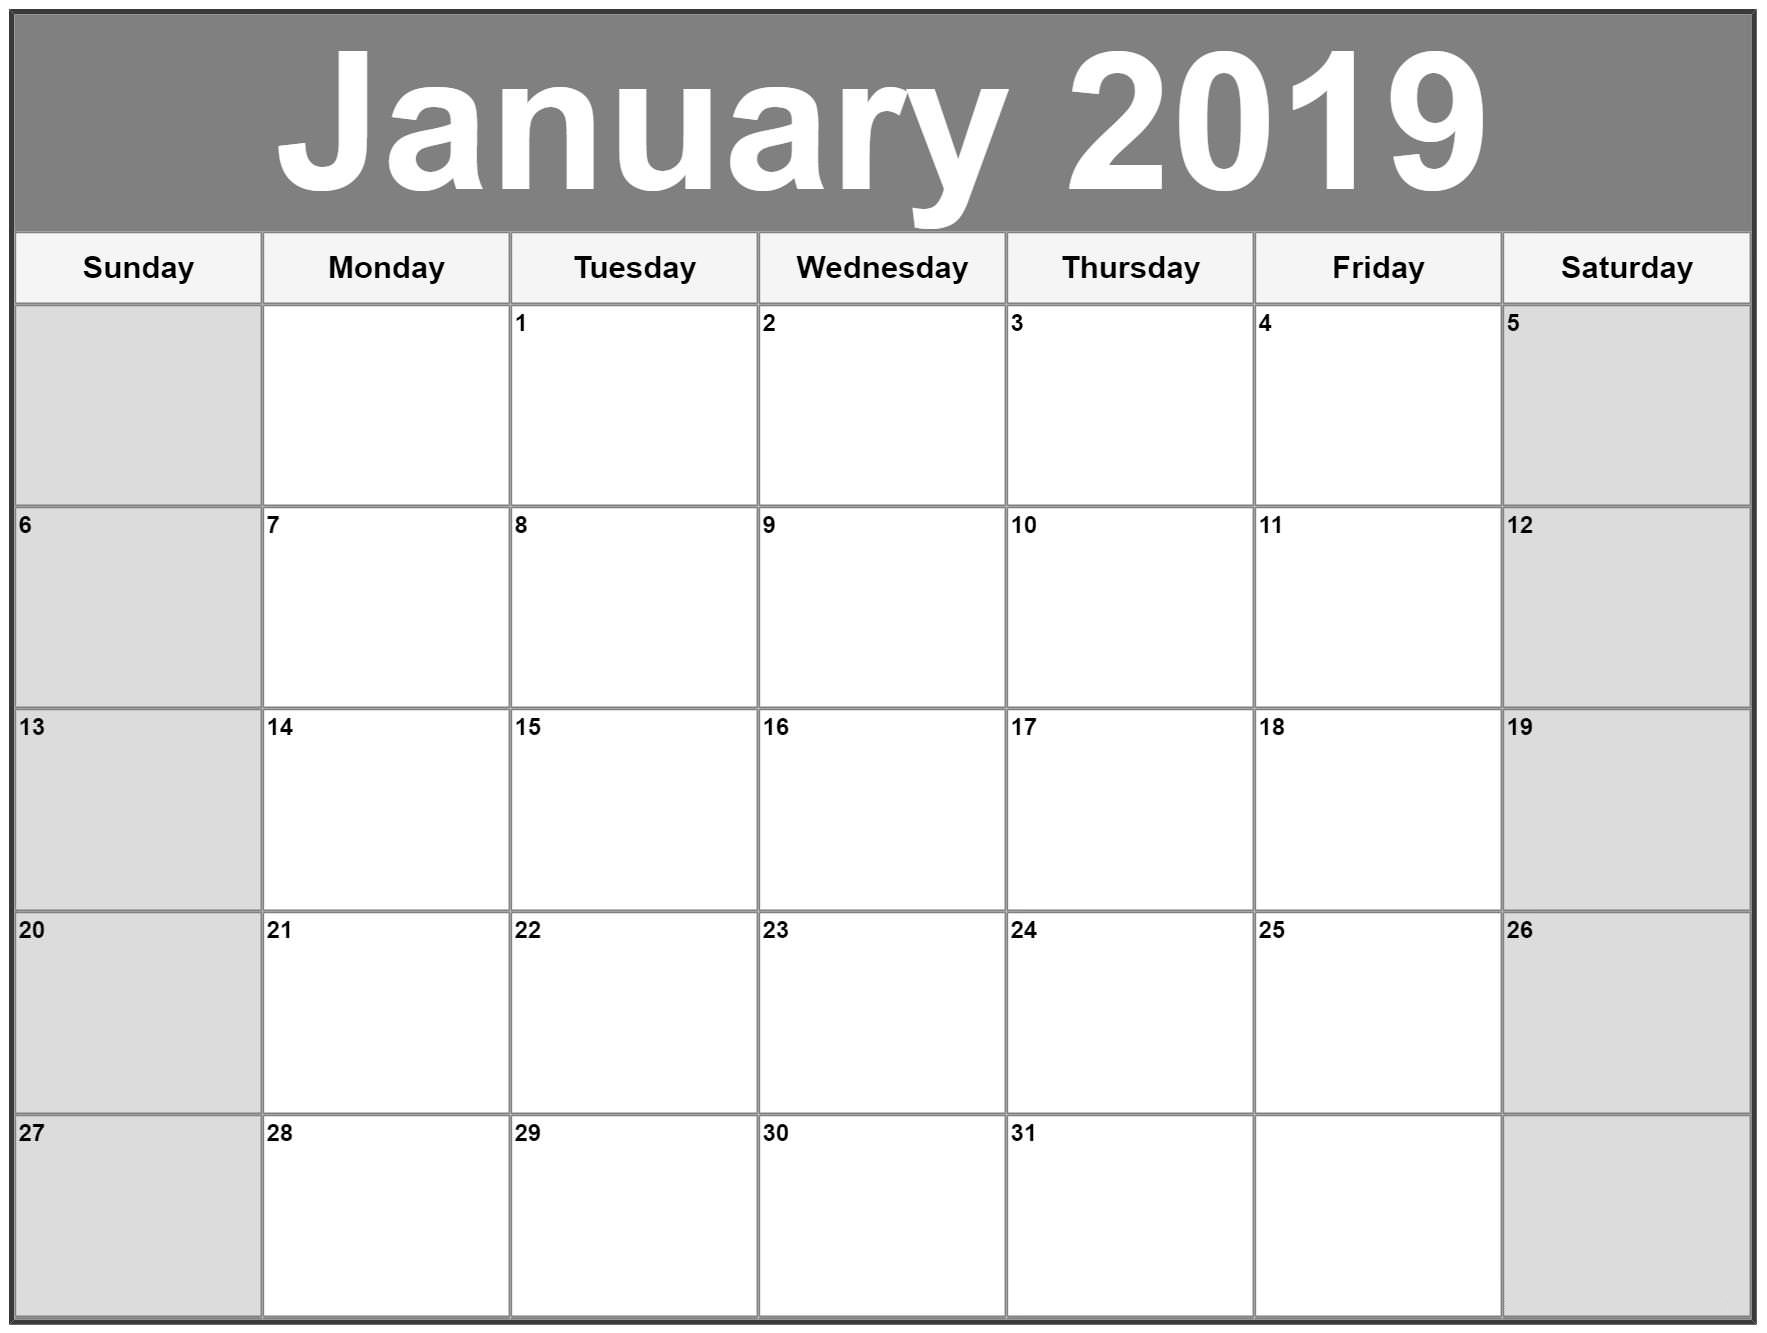 january 2019 islamic calendar january 2019 calendar templates::January 2019 Calendar USA